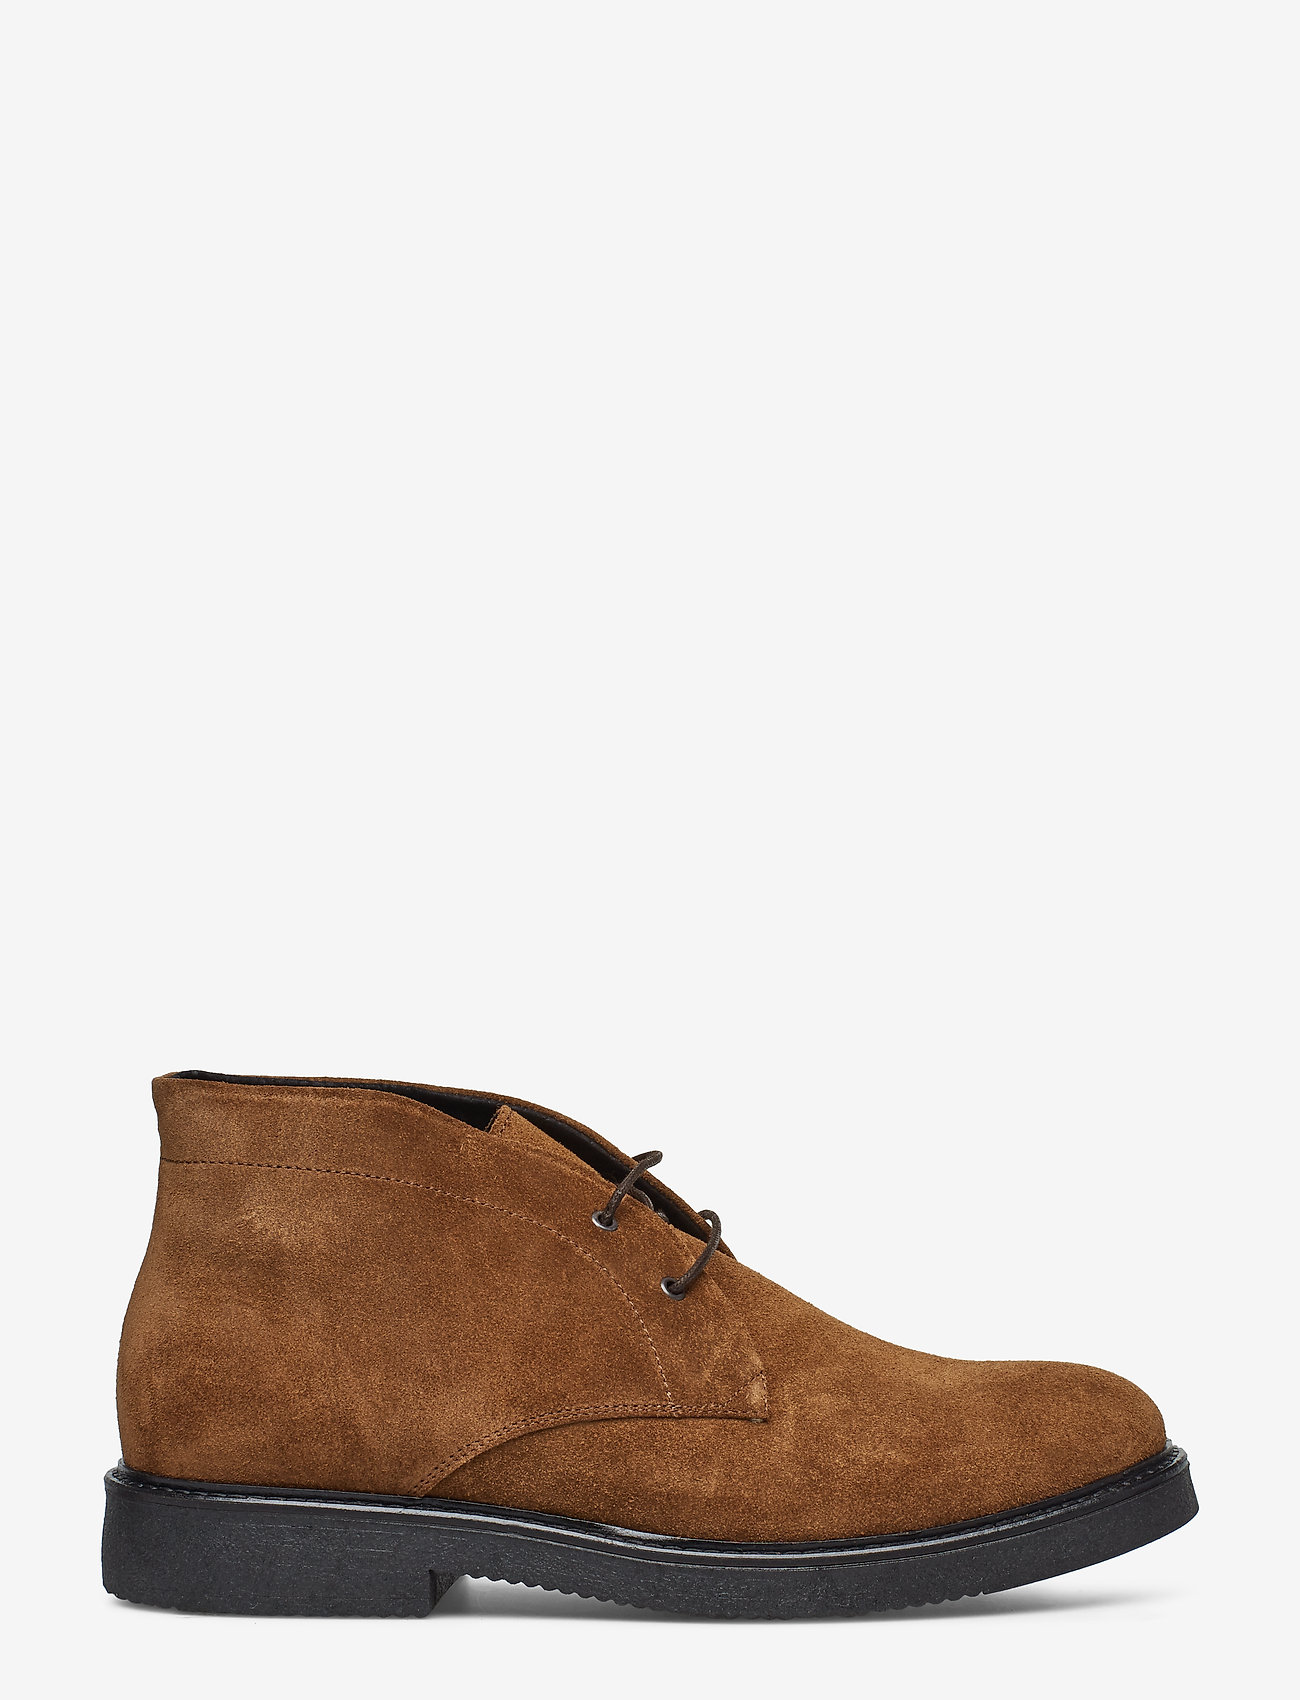 Shoe The Bear - HARDY S - desert boots - tobacco - 1